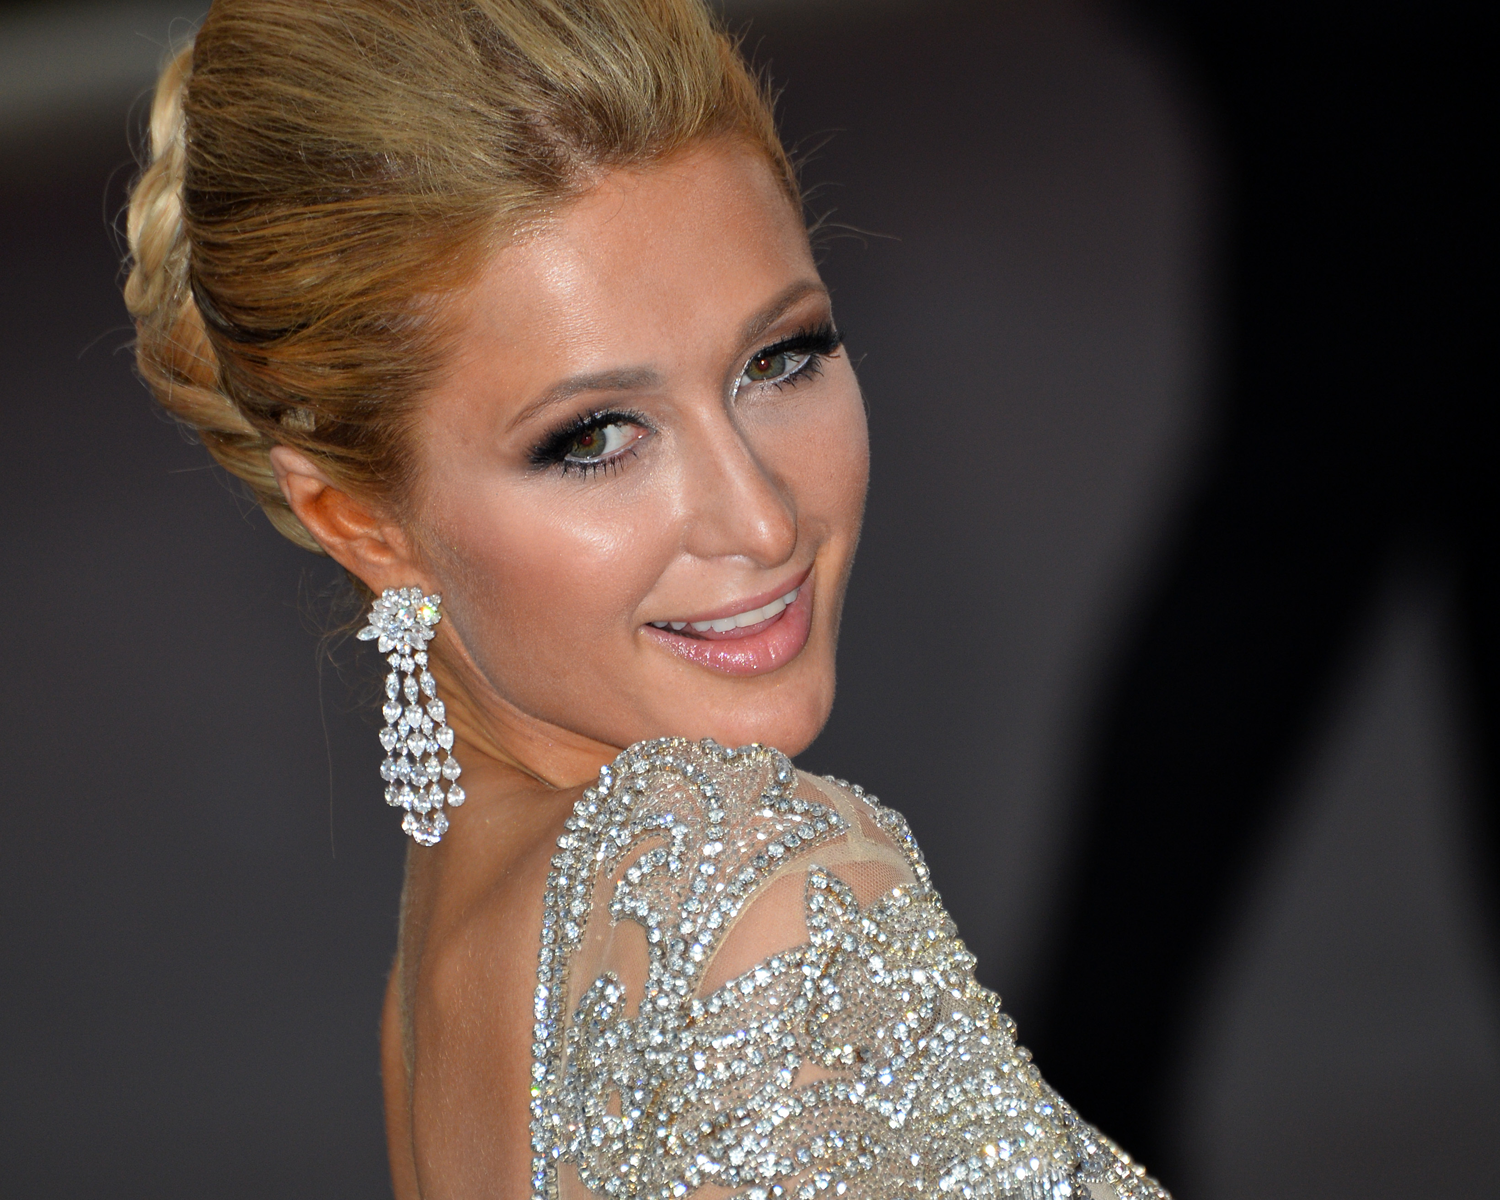 Paris Hilton S Engagement Ring Is Likely The Biggest